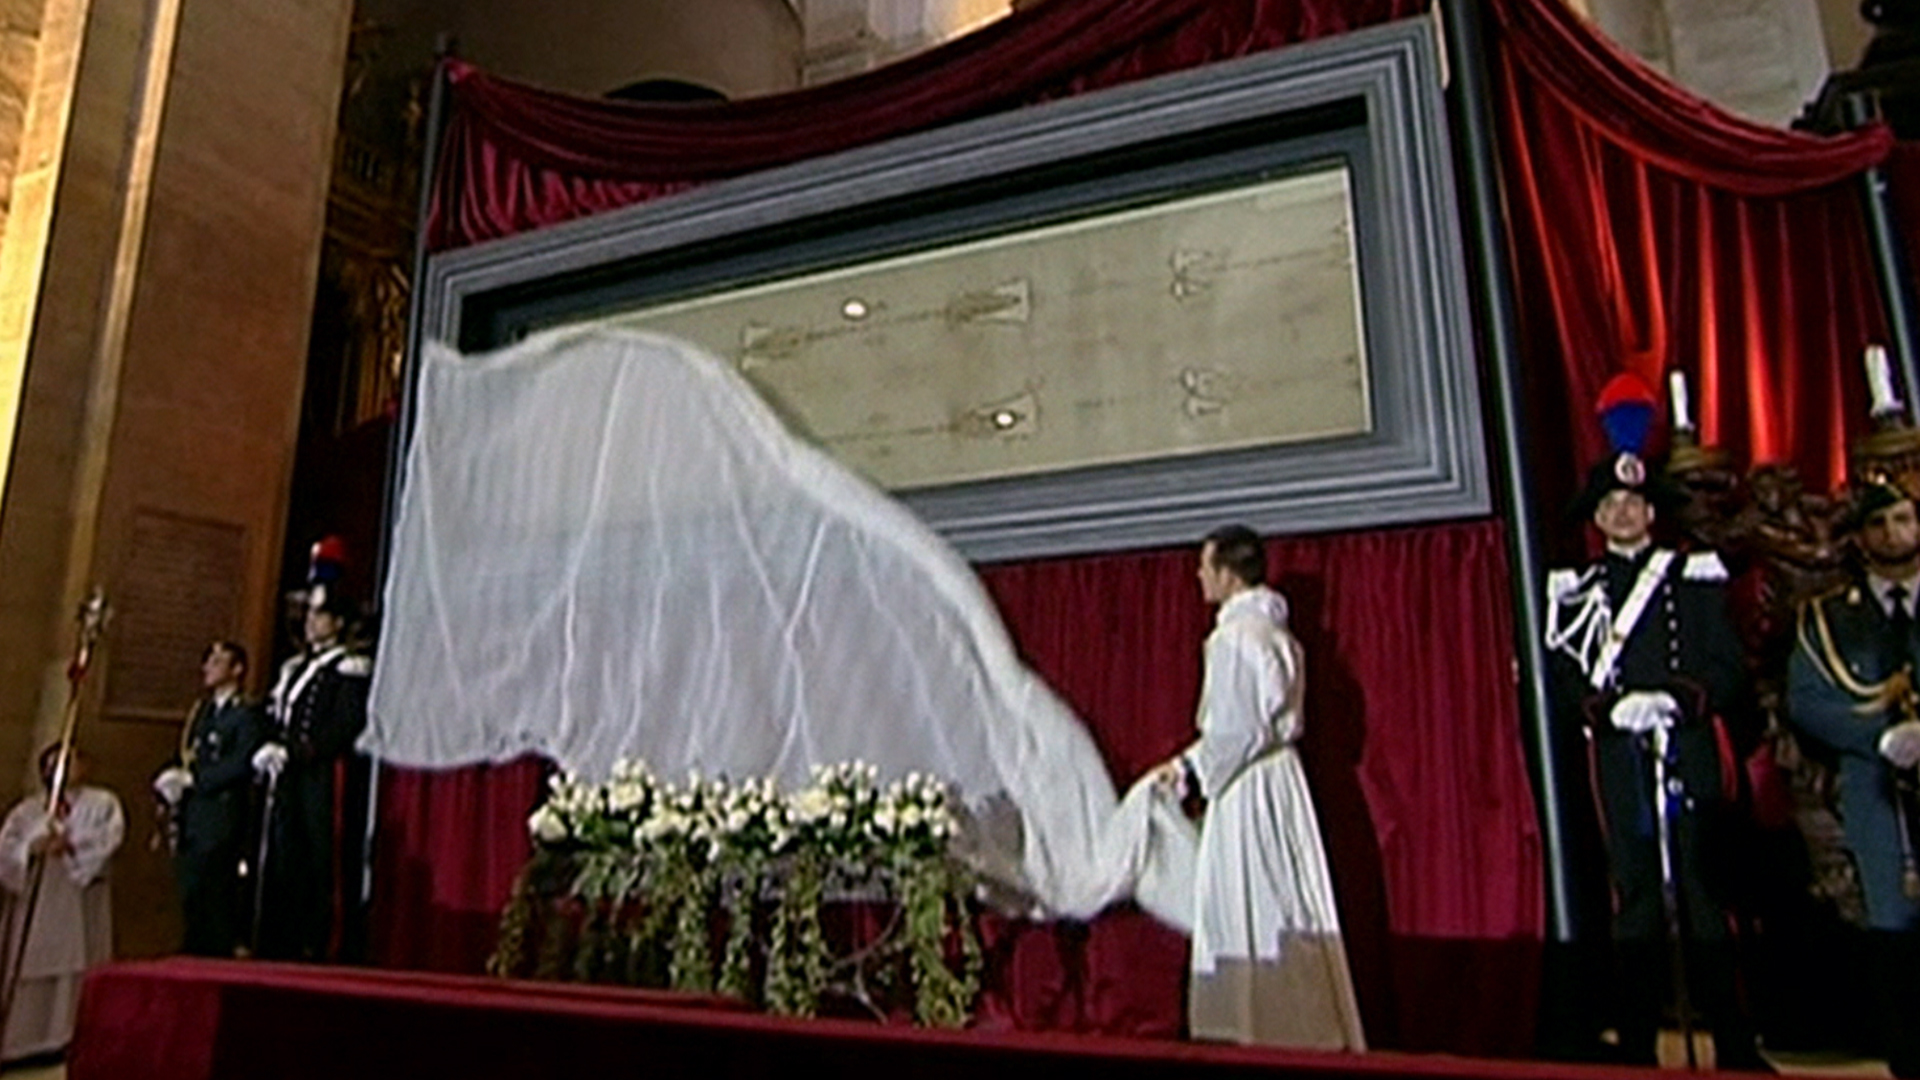 shroud of turin debate live stream - photo#13